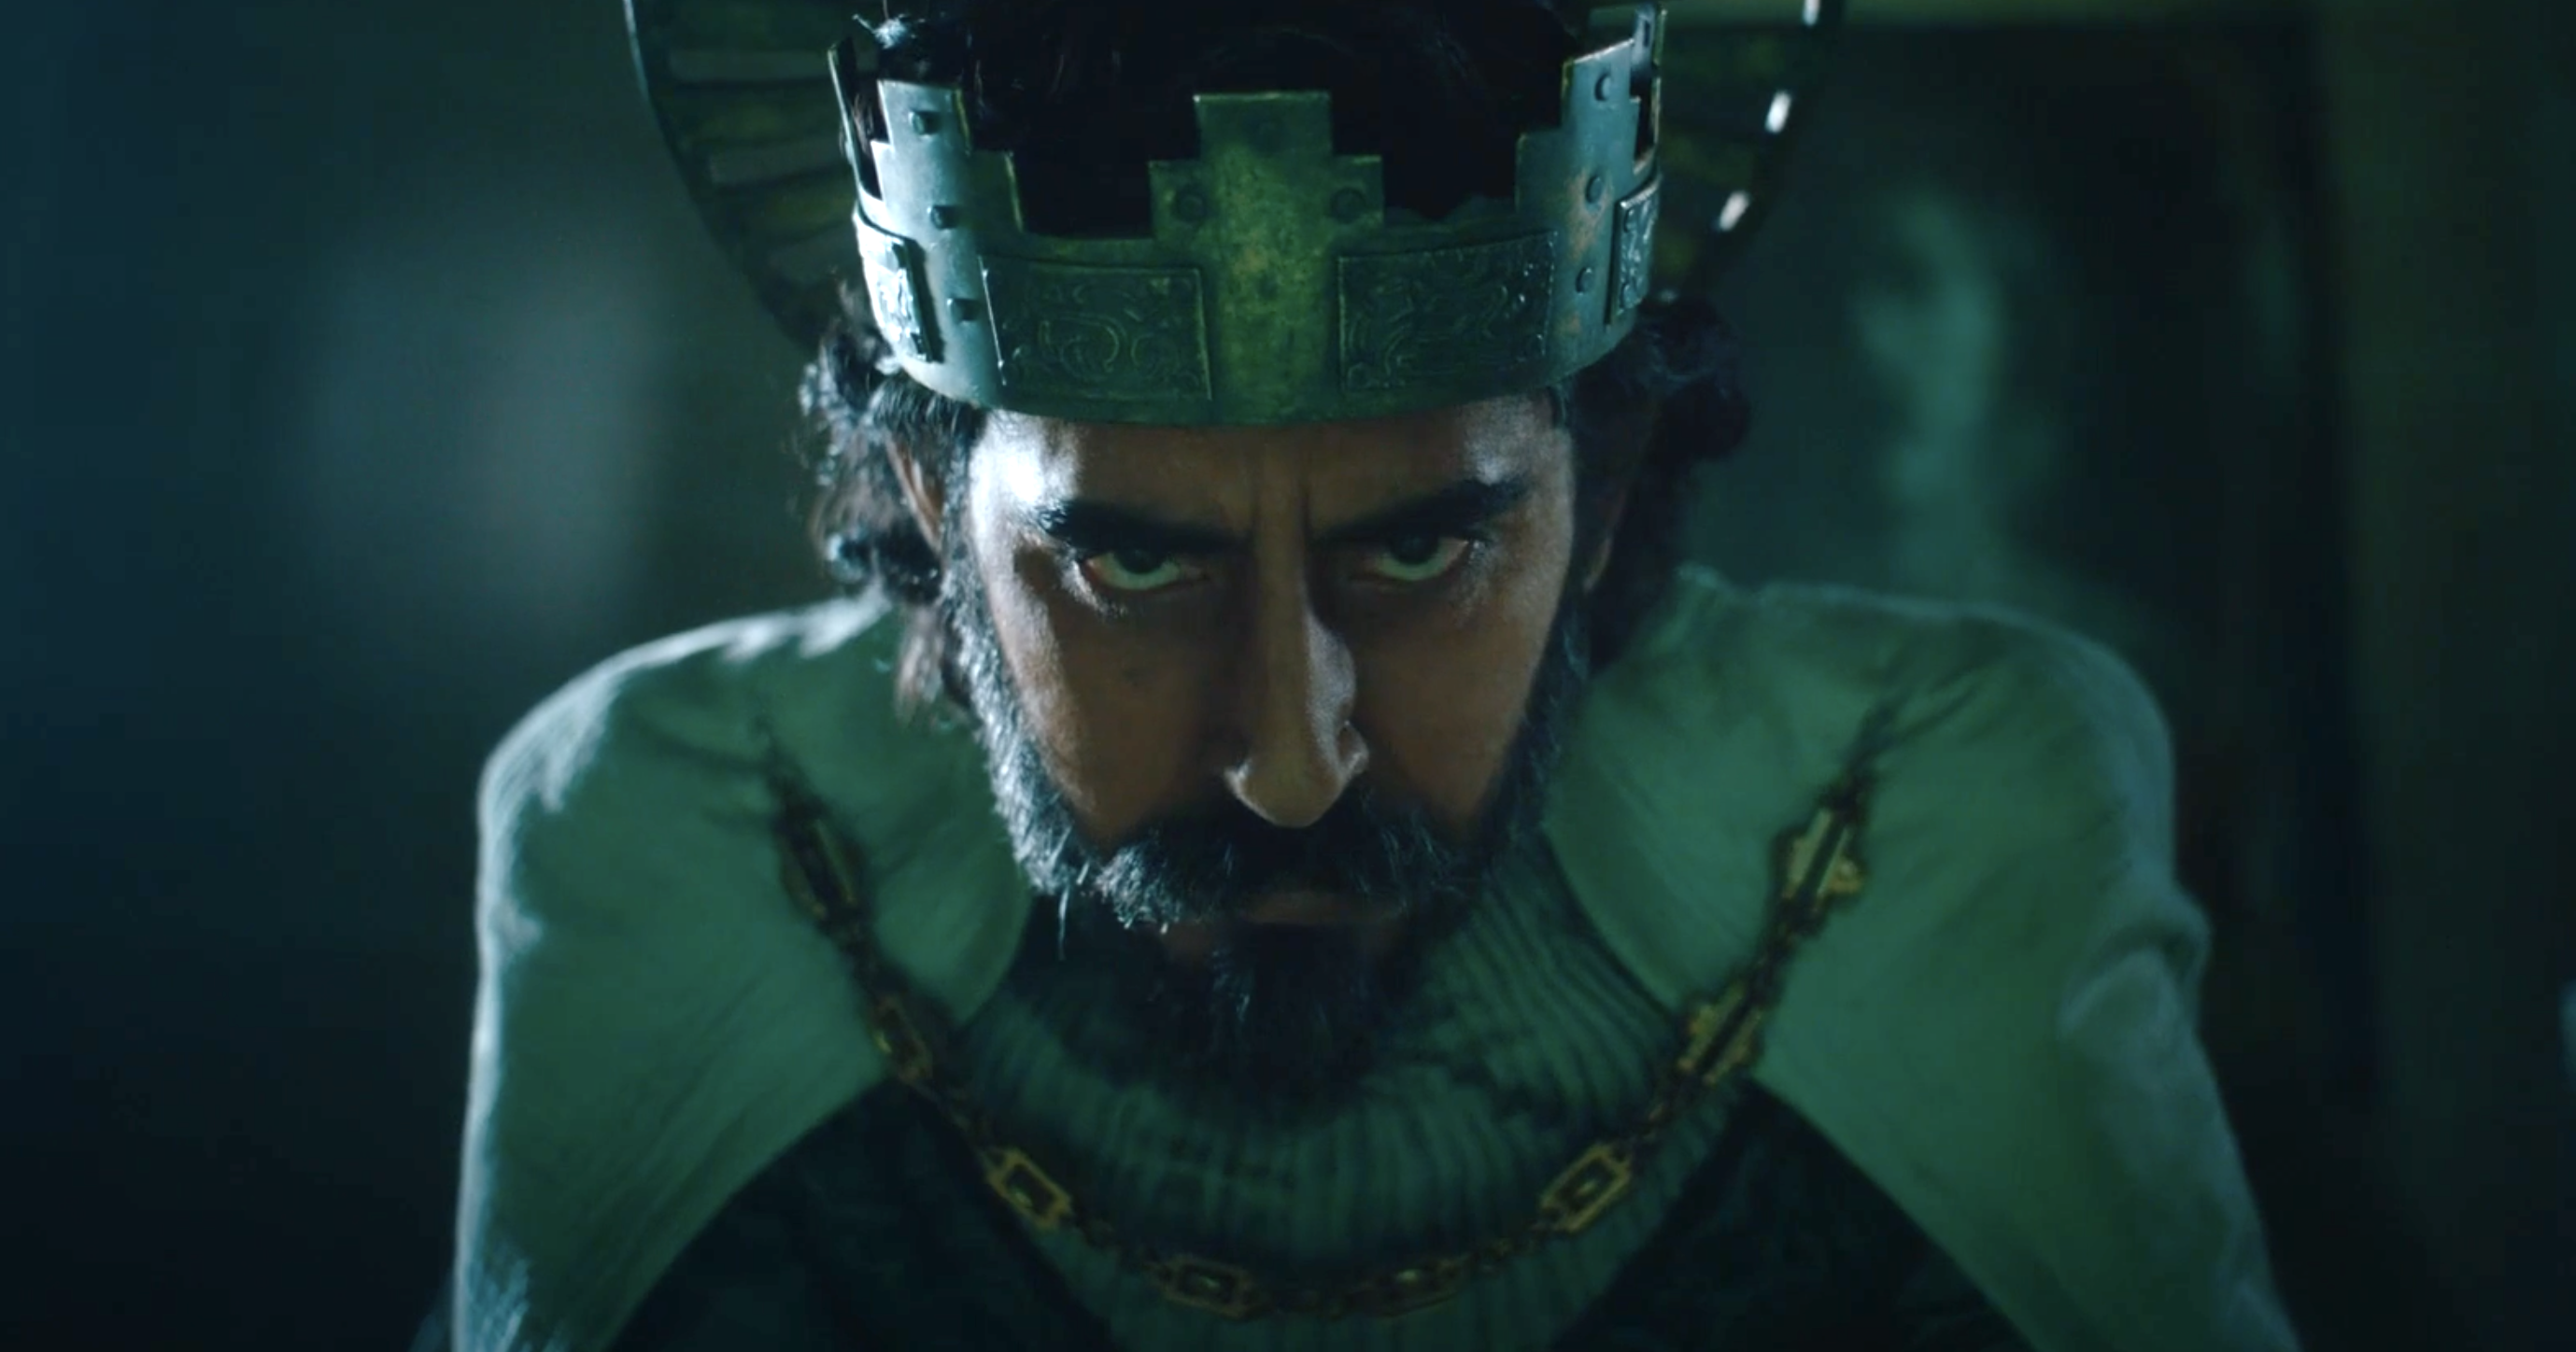 Dev Patel wears robes and a crown, and a pained expression.